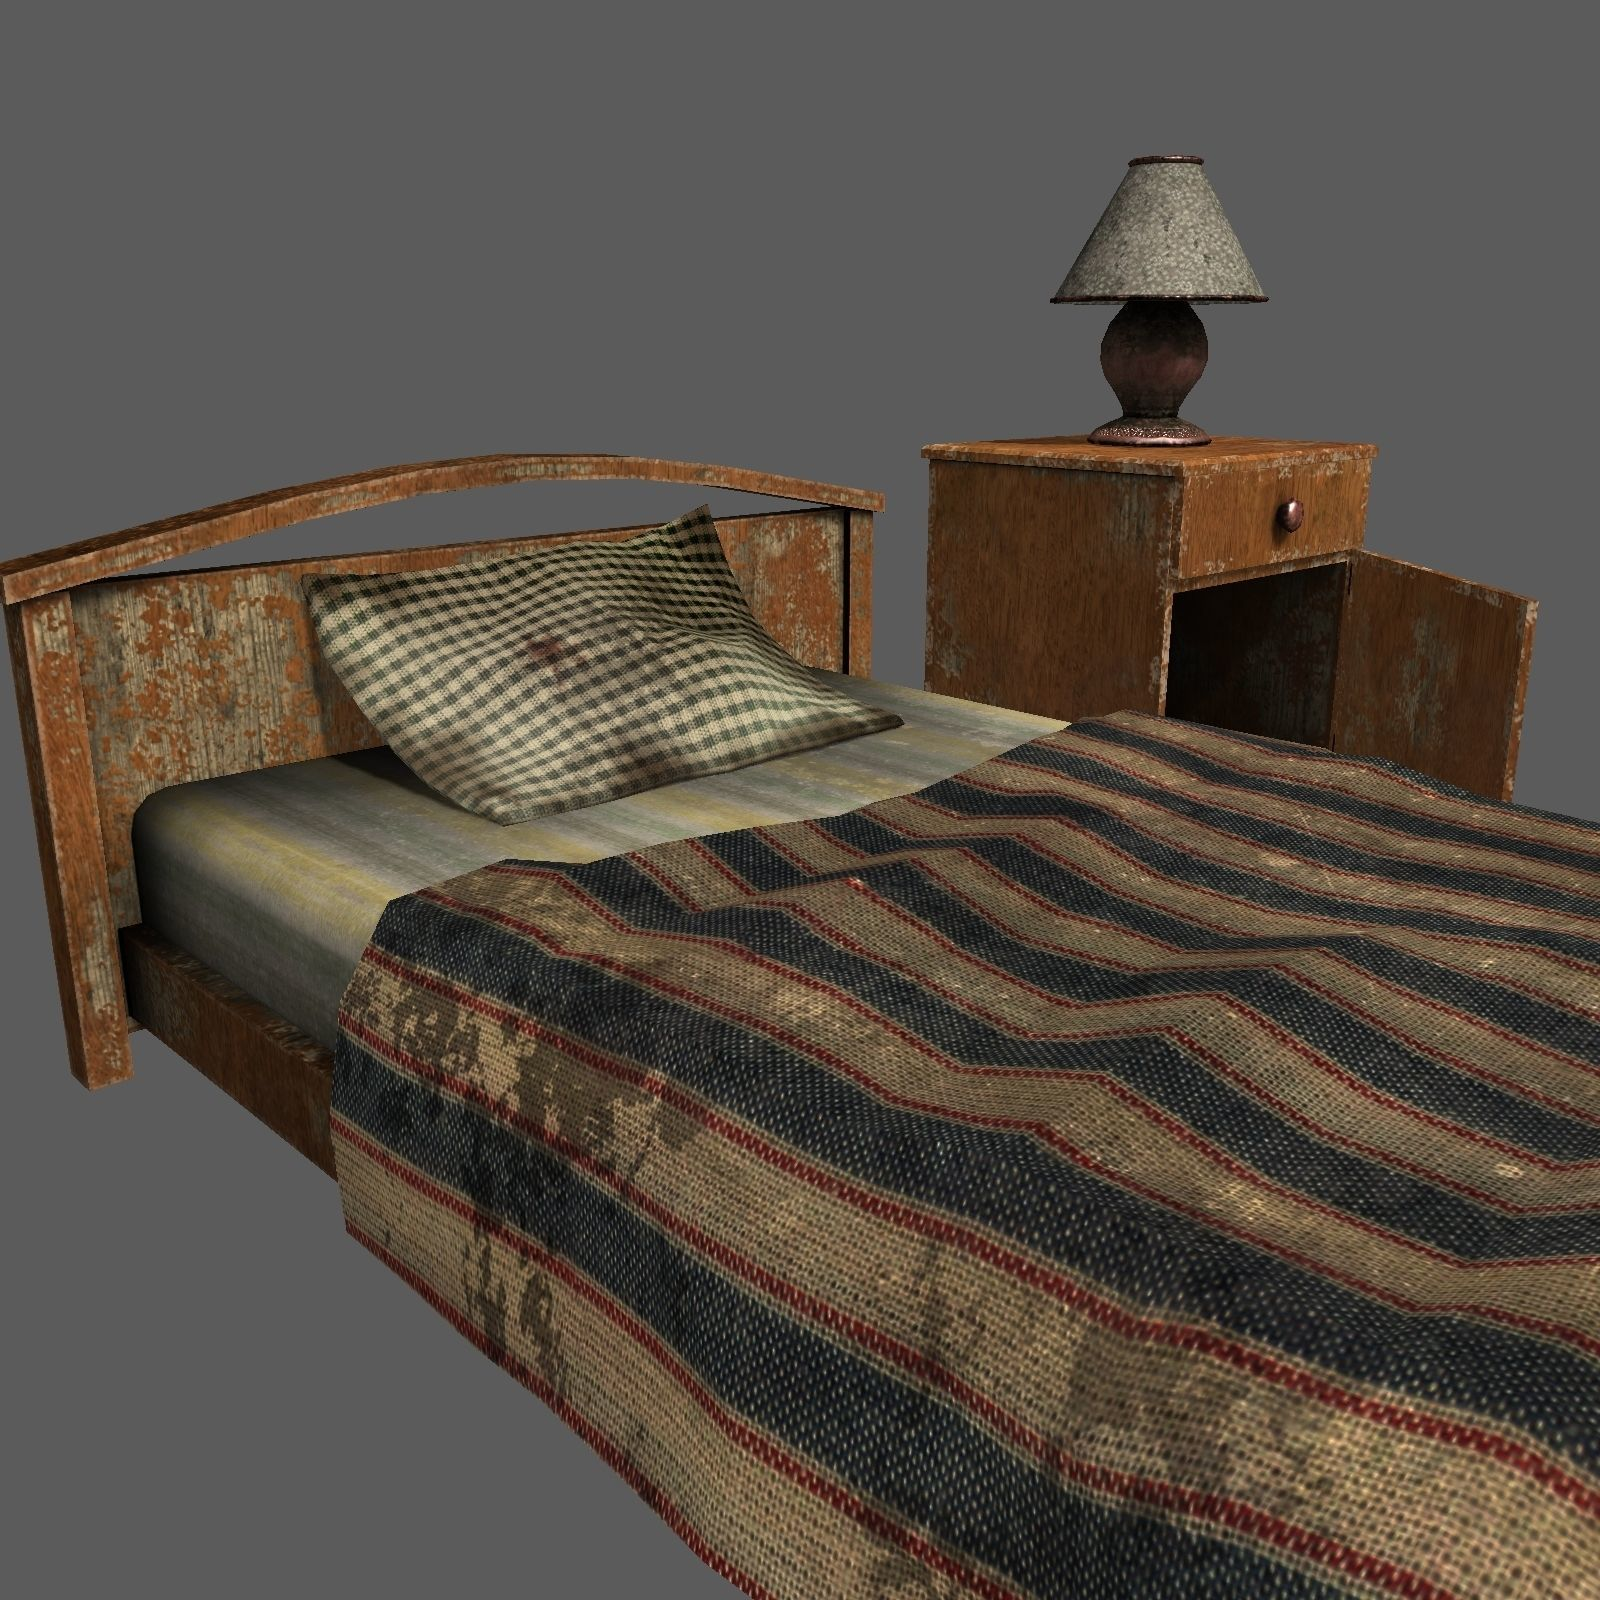 Old Bed Lamp and Bedside Table Pack